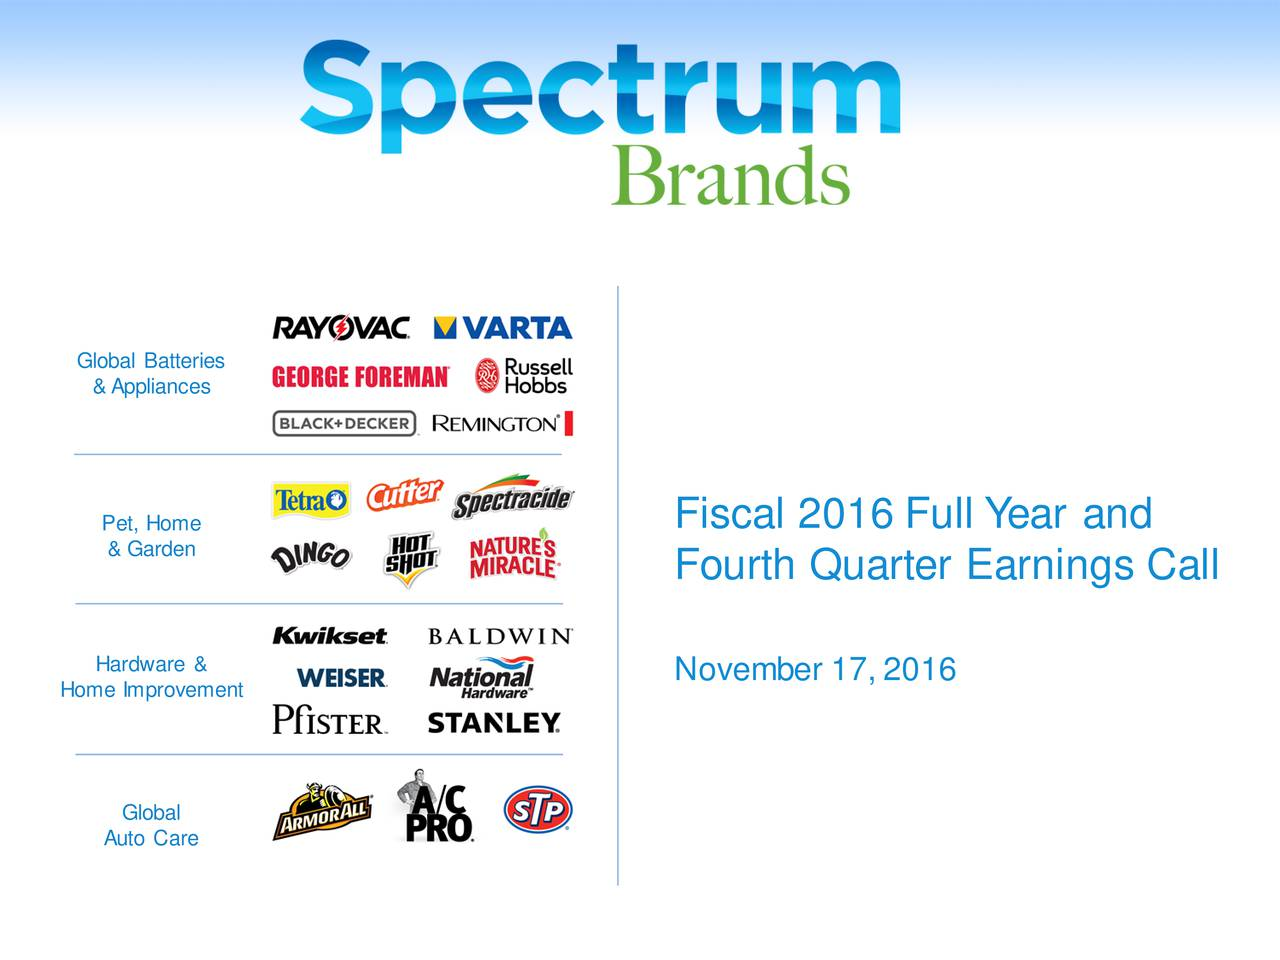 &Appliances Pet, Home Fiscal 2016 Full Y ear and & Garden Fourth Quarter Earnings Call Hardware & November 17, 2016 Home Improvement Global Auto Care